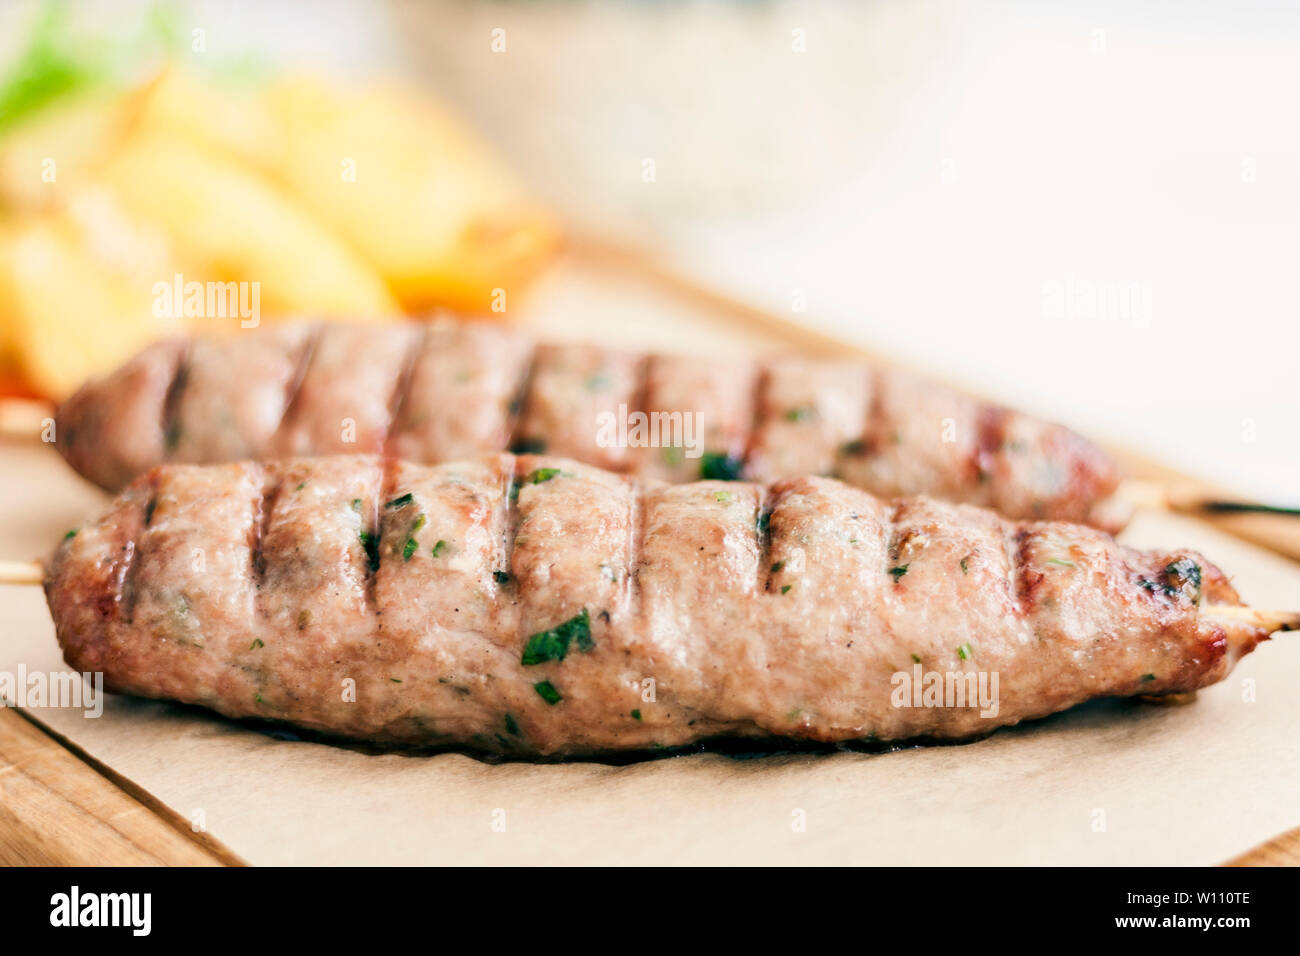 grilled minced meat with herbs, traditional Greek lunch in a restaurant - Stock Image